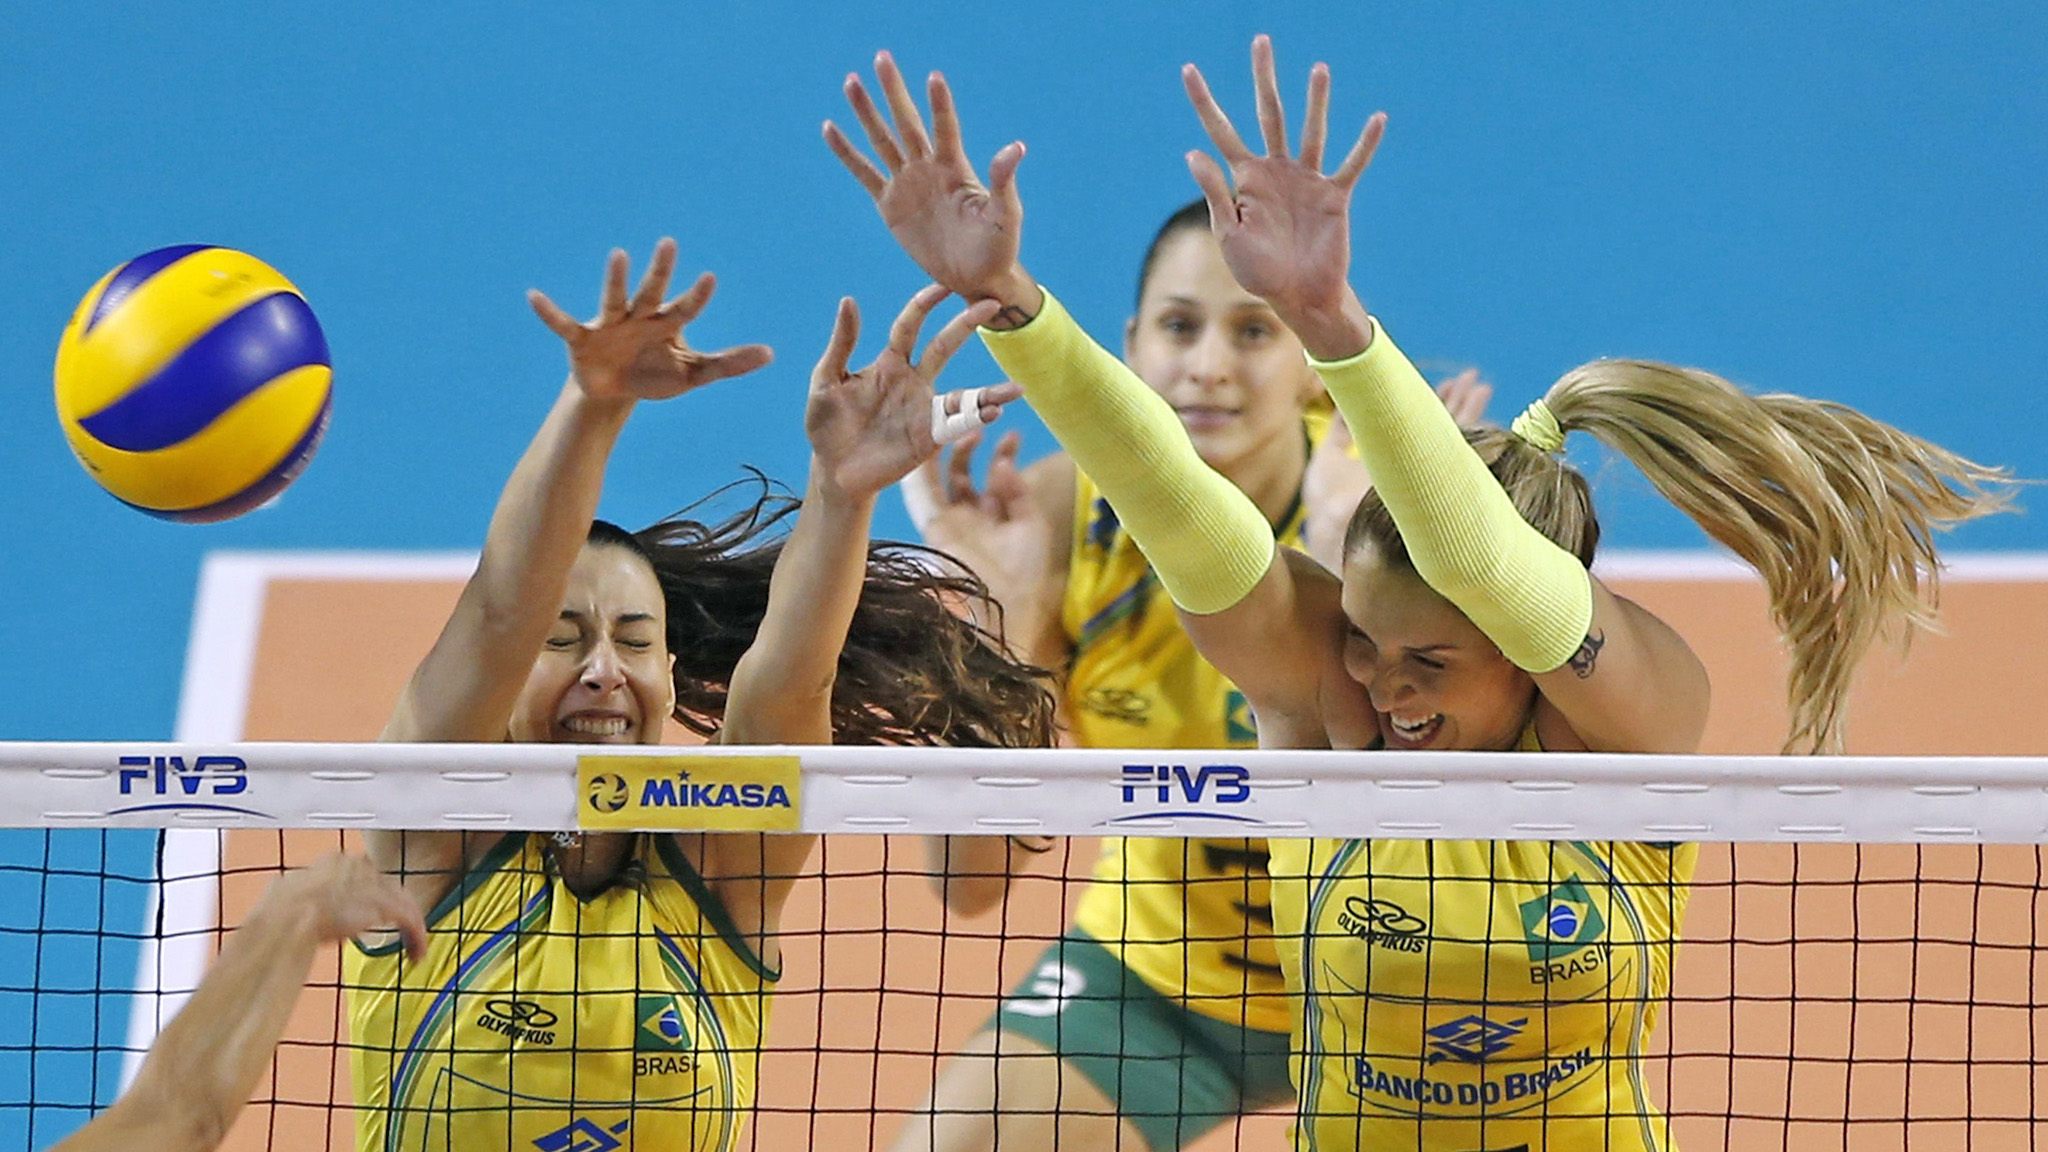 Sheilla Castro De Paula Blassioli and Thaisa Menezes of Brazil jump to block the ball spiked  by Gozde Sonsirma of Turkey during their FIVB Women's Volleyball World Grand Prix 2014 final round match in Tokyo